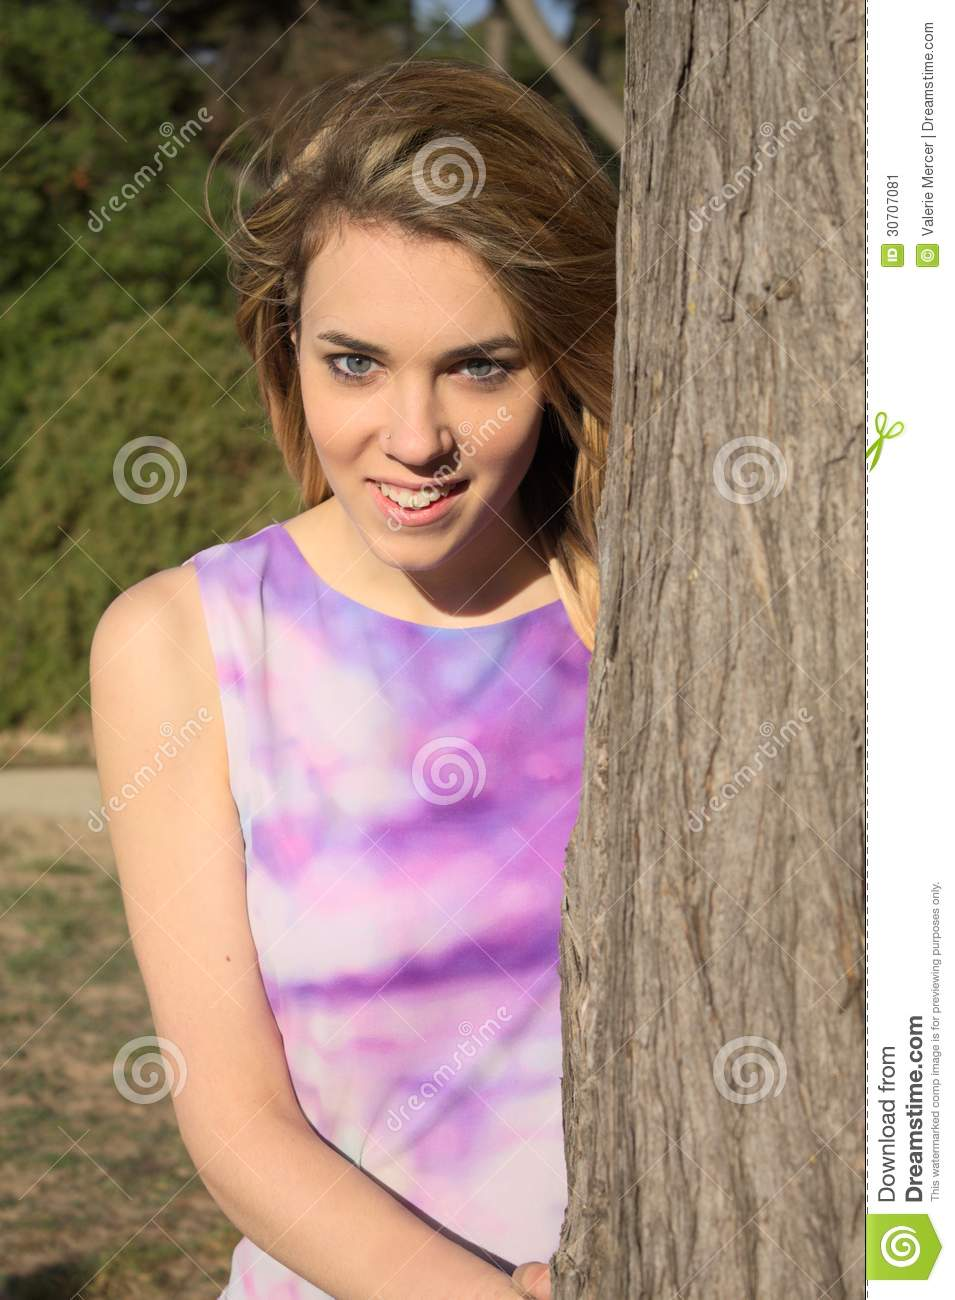 Teenager With Pimples And Nose Piercing Stock Image - Image of trunk